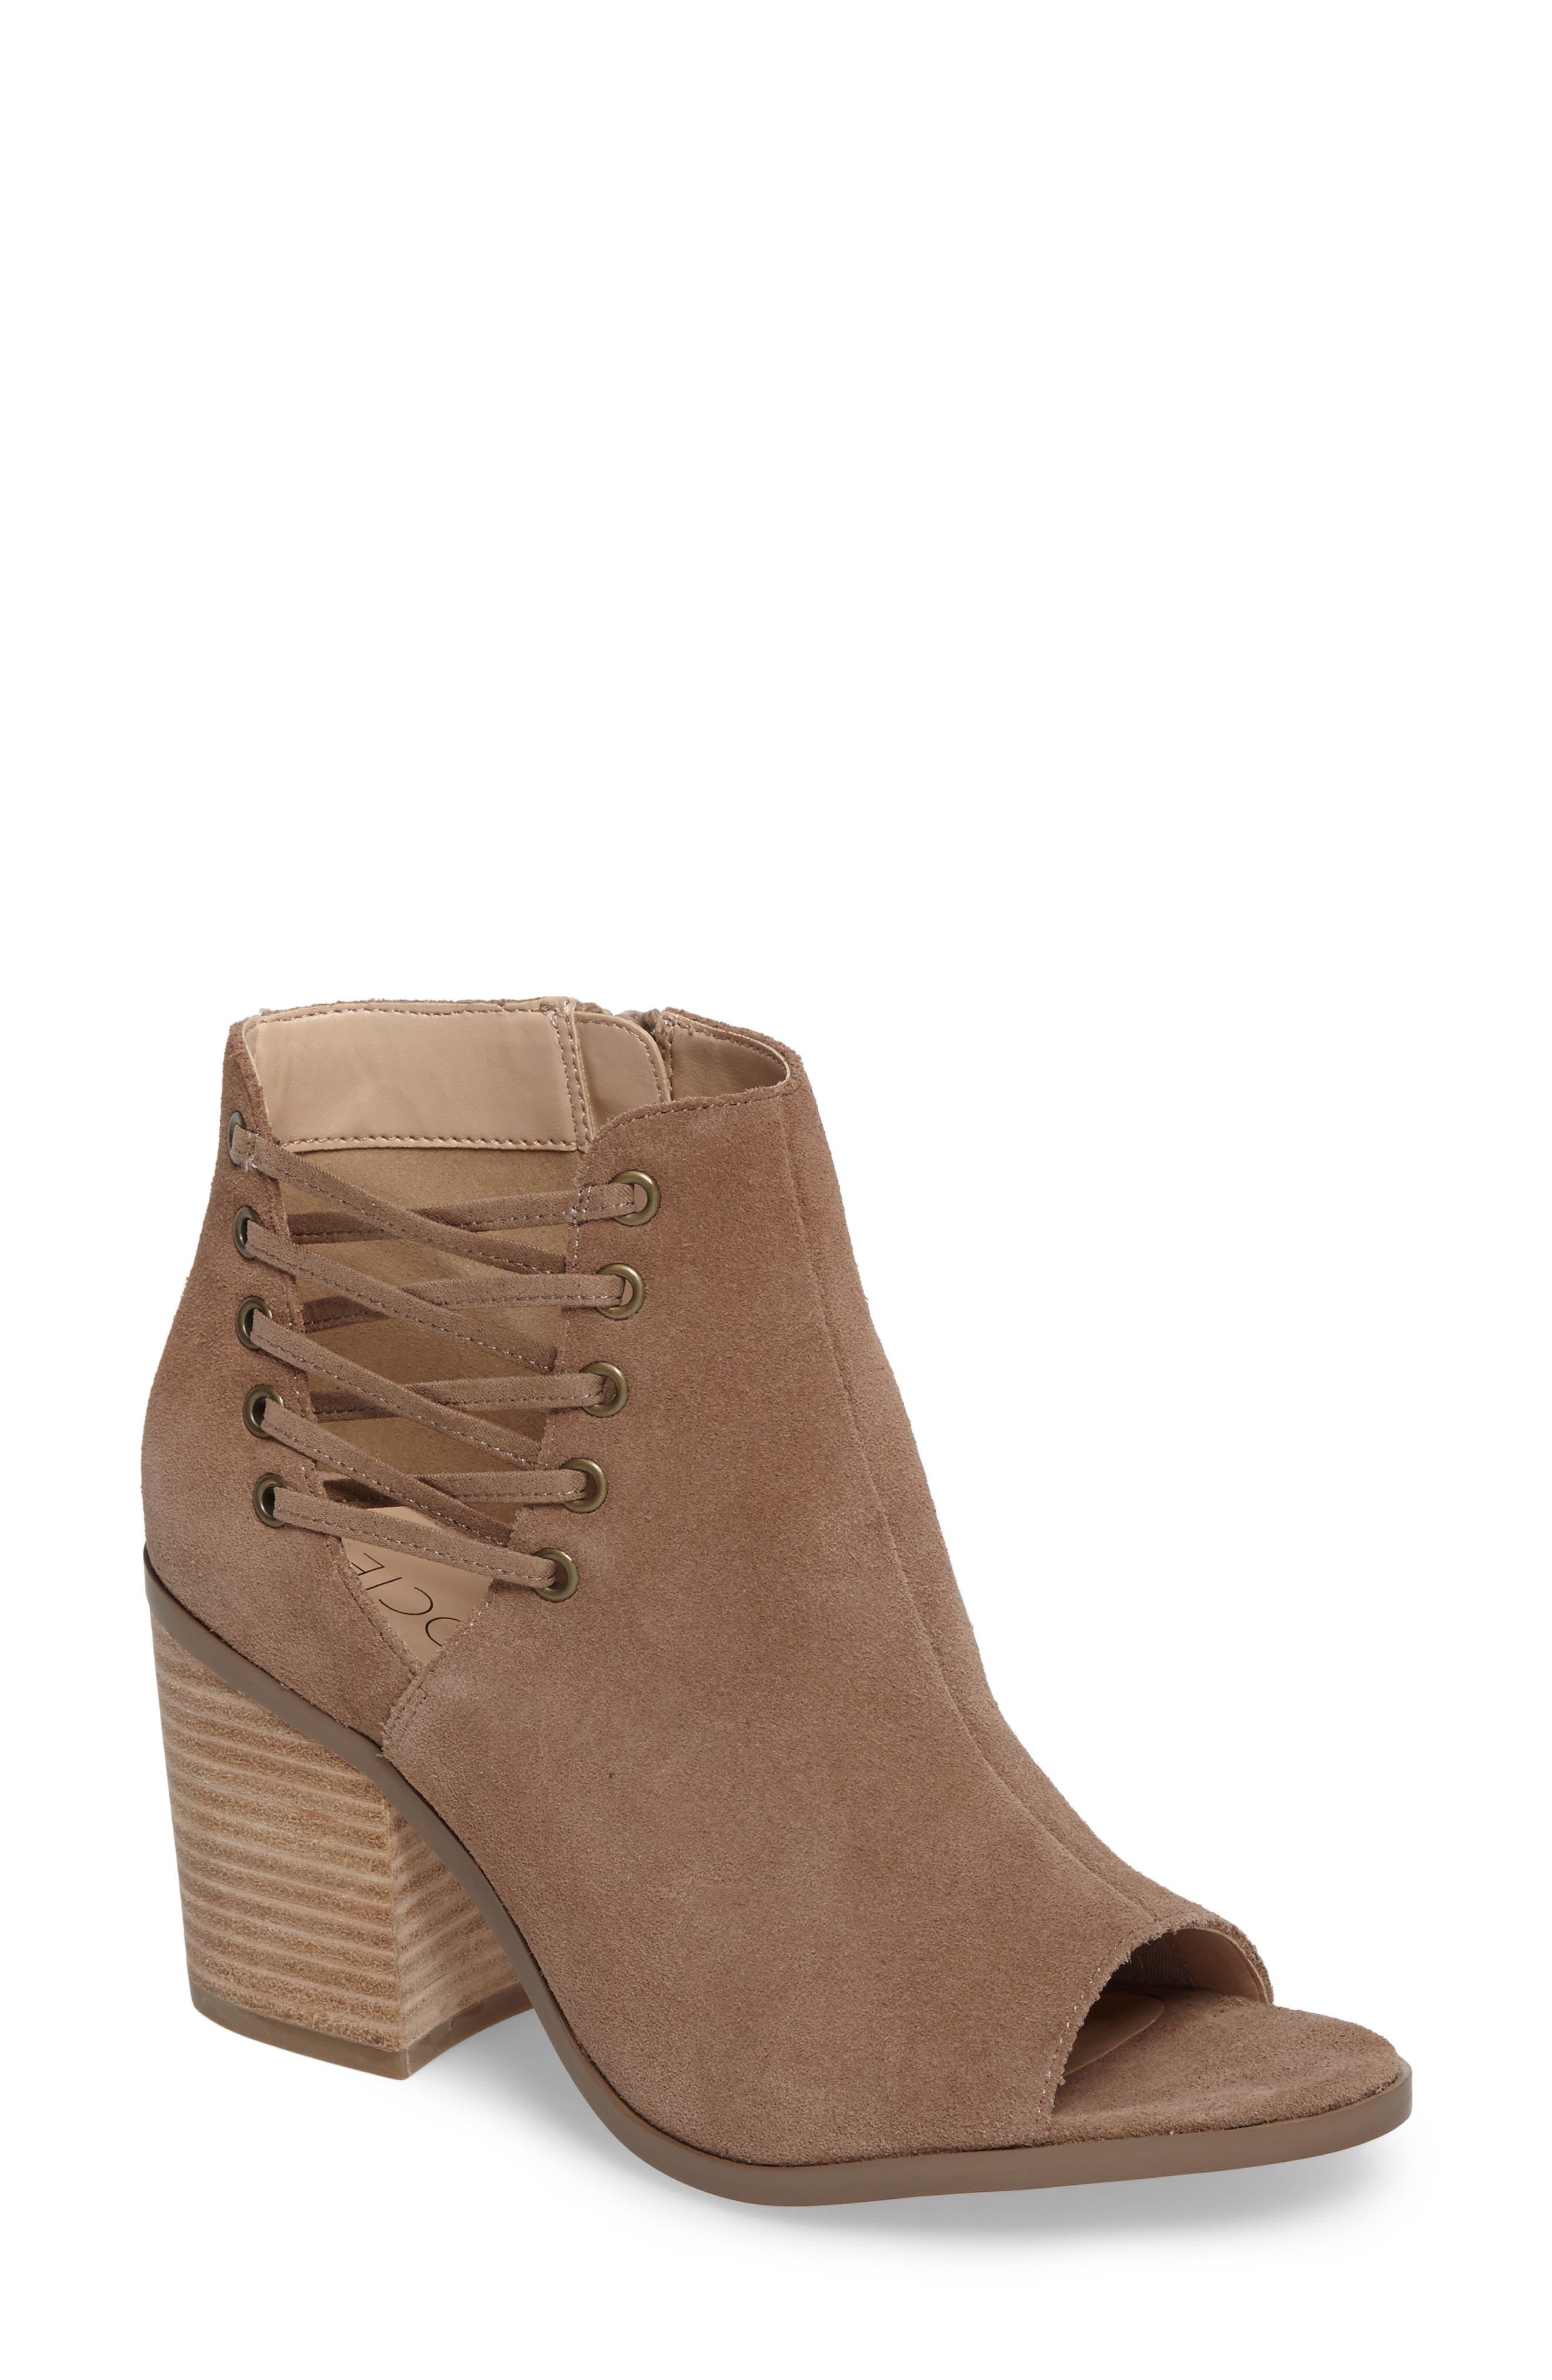 Sole Society Beechwood Peep Toe Bootie (Women)